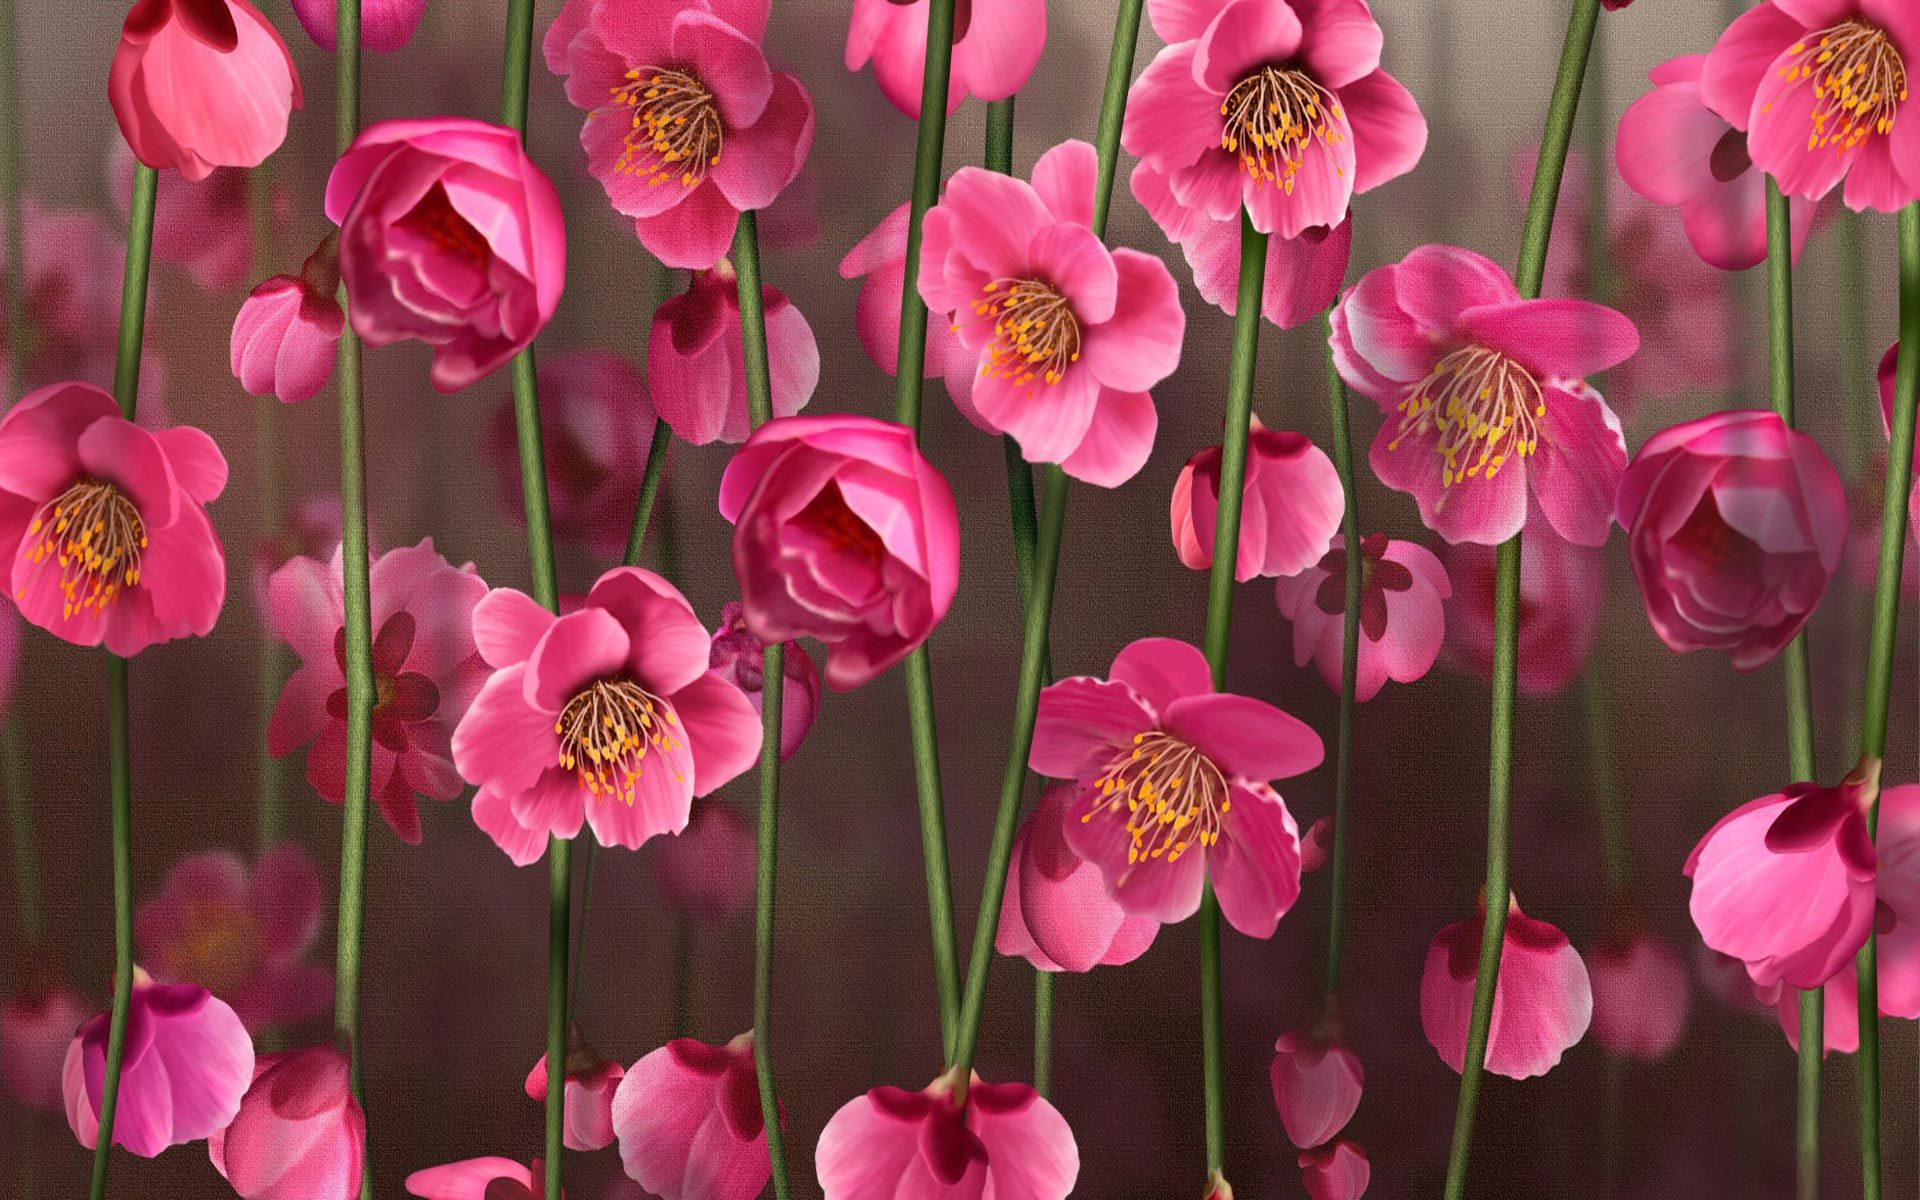 Flower wallpapers pink wallpaper flowers desktop flower wallpaper flower wallpapers pink wallpaper flowers desktop flower wallpaper dhlflorist Choice Image